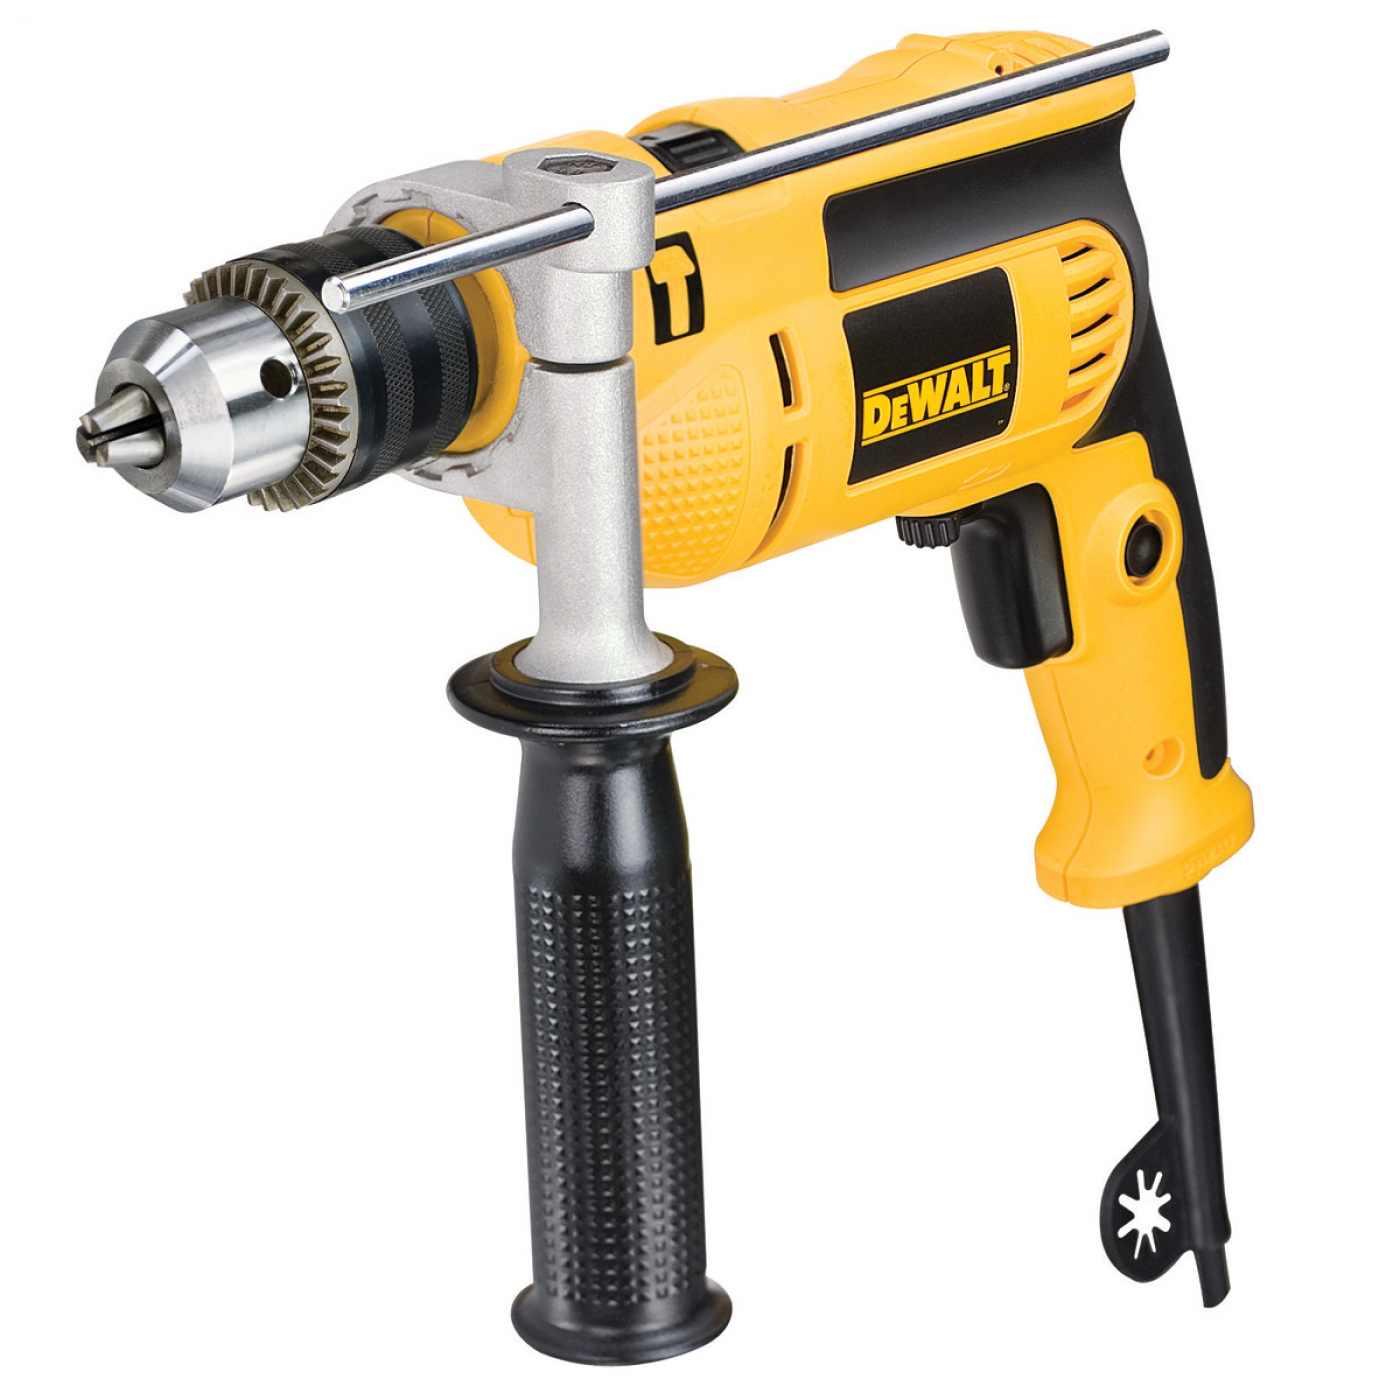 DEWALT DWD024-B5 13MM PERCUSSION DRILL 220V